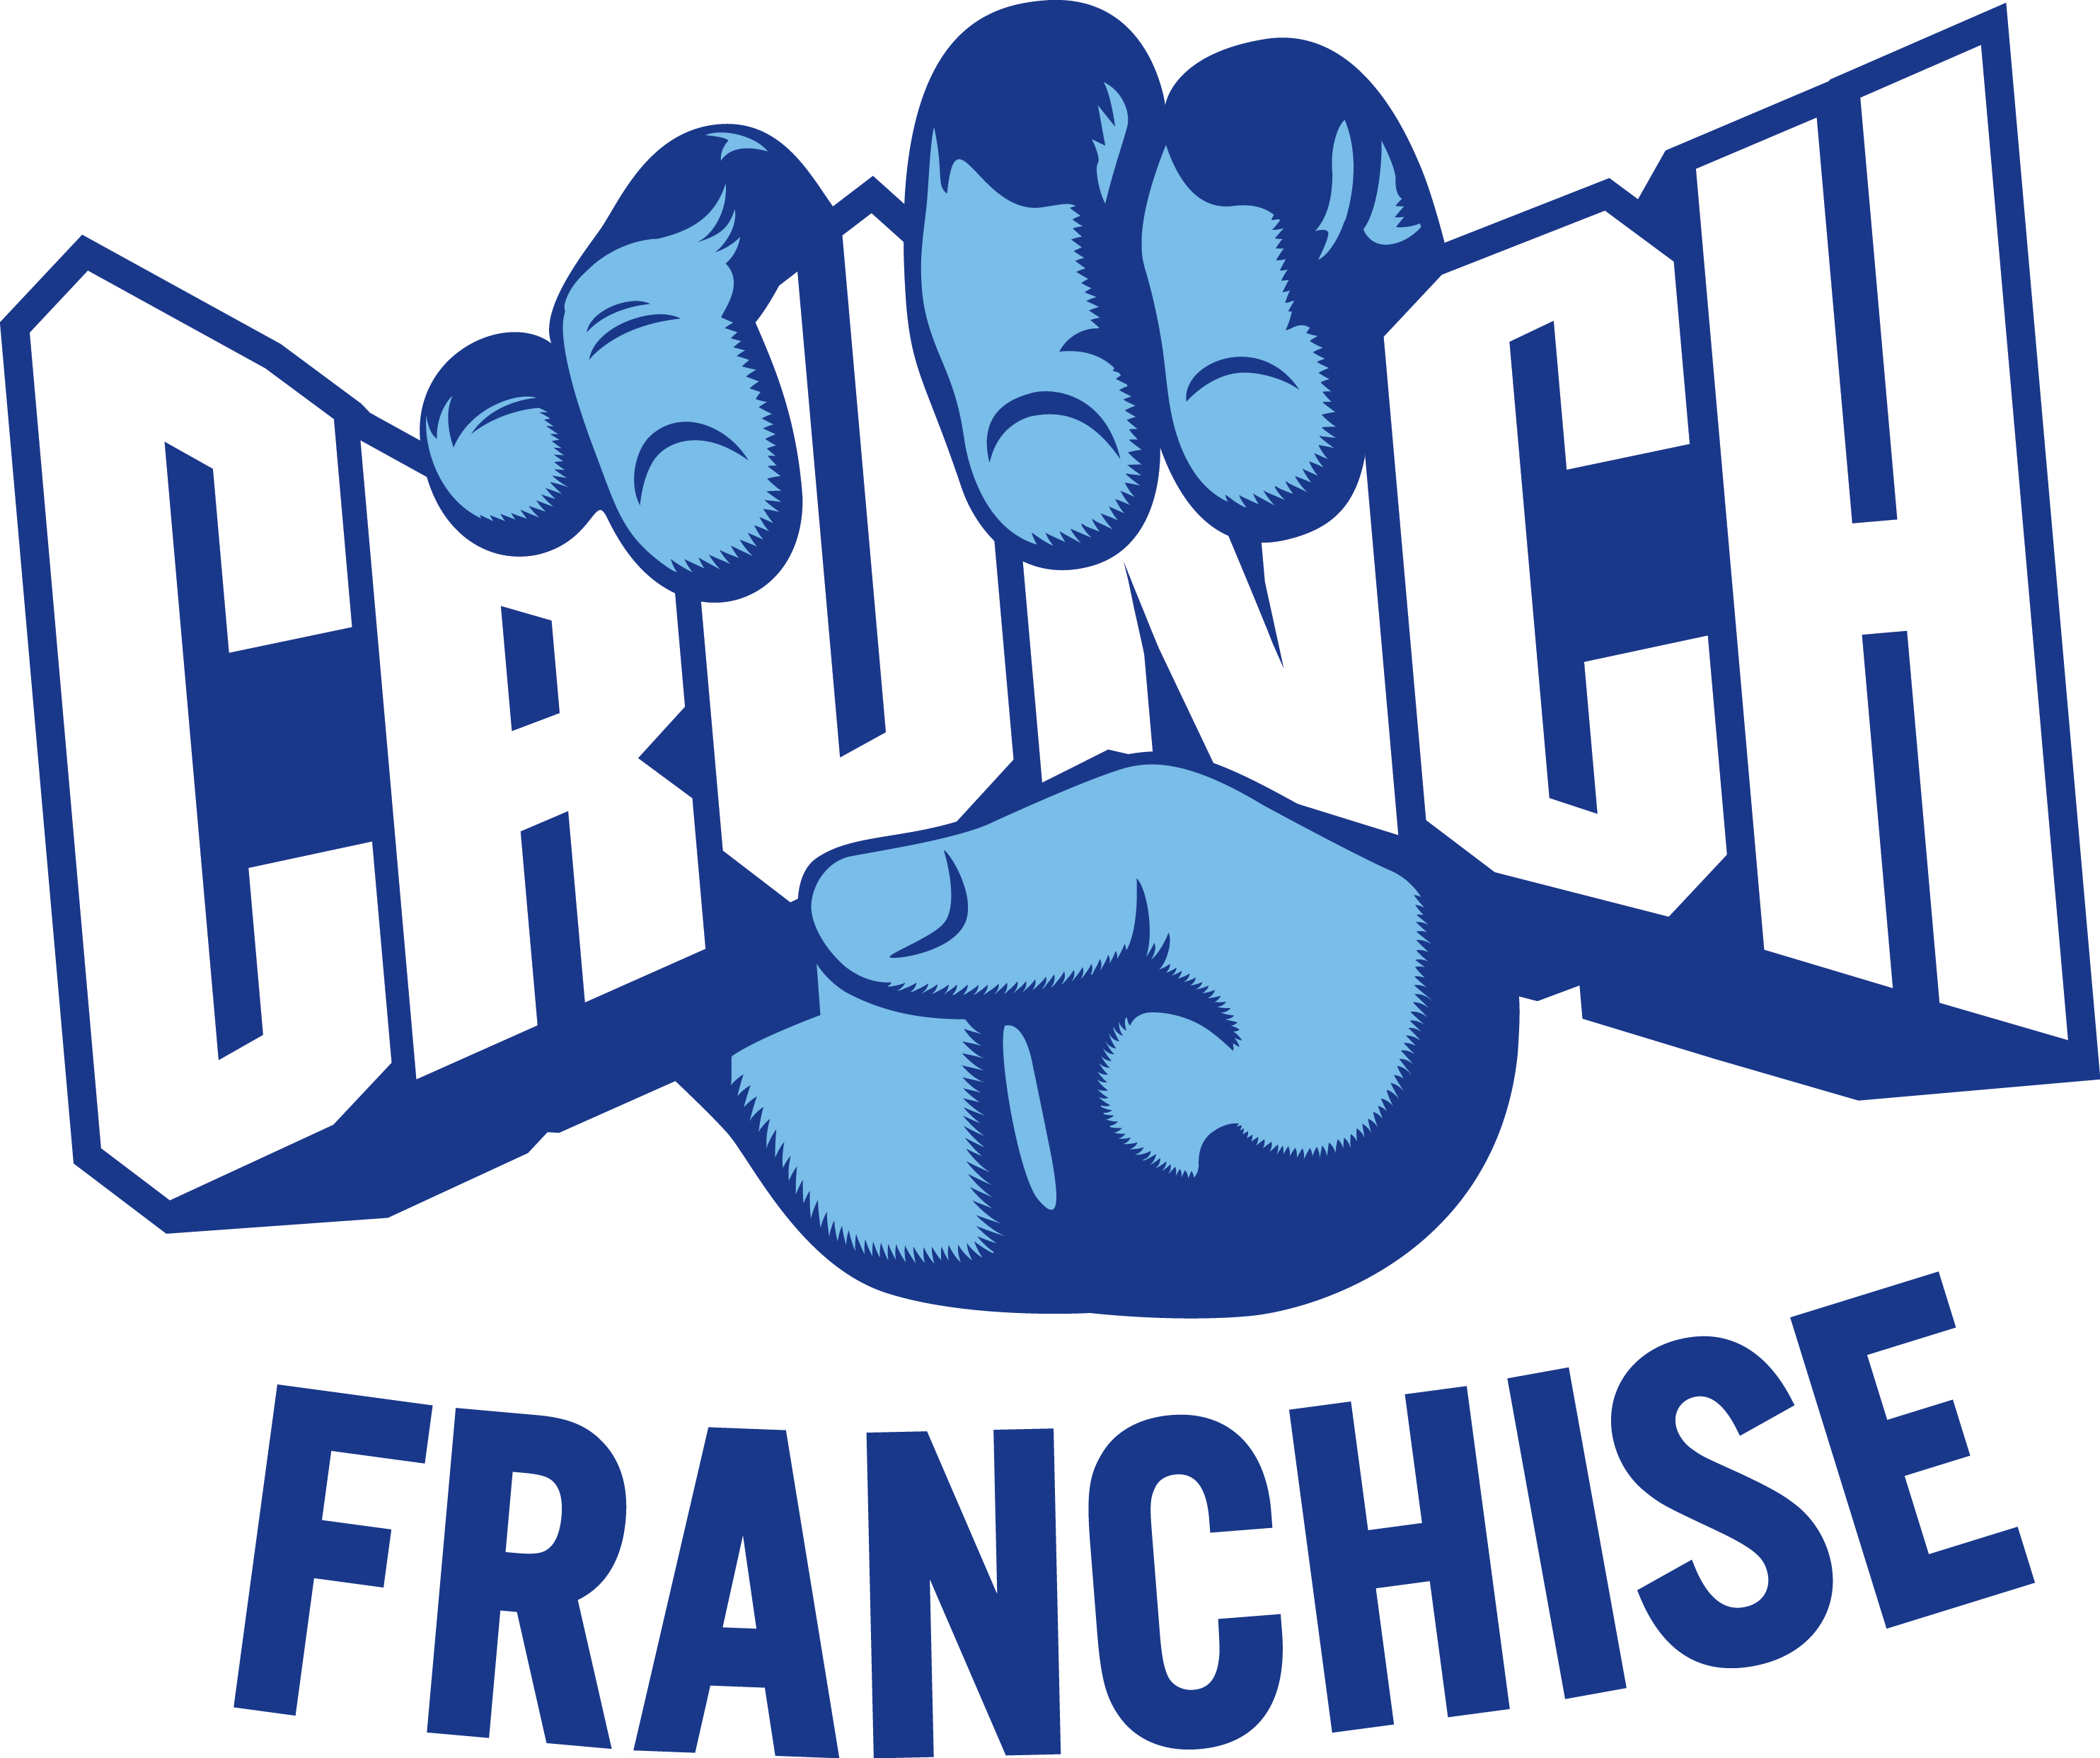 Crunch Franchise Cost Crunch Franchise Opportunities Franchise Help